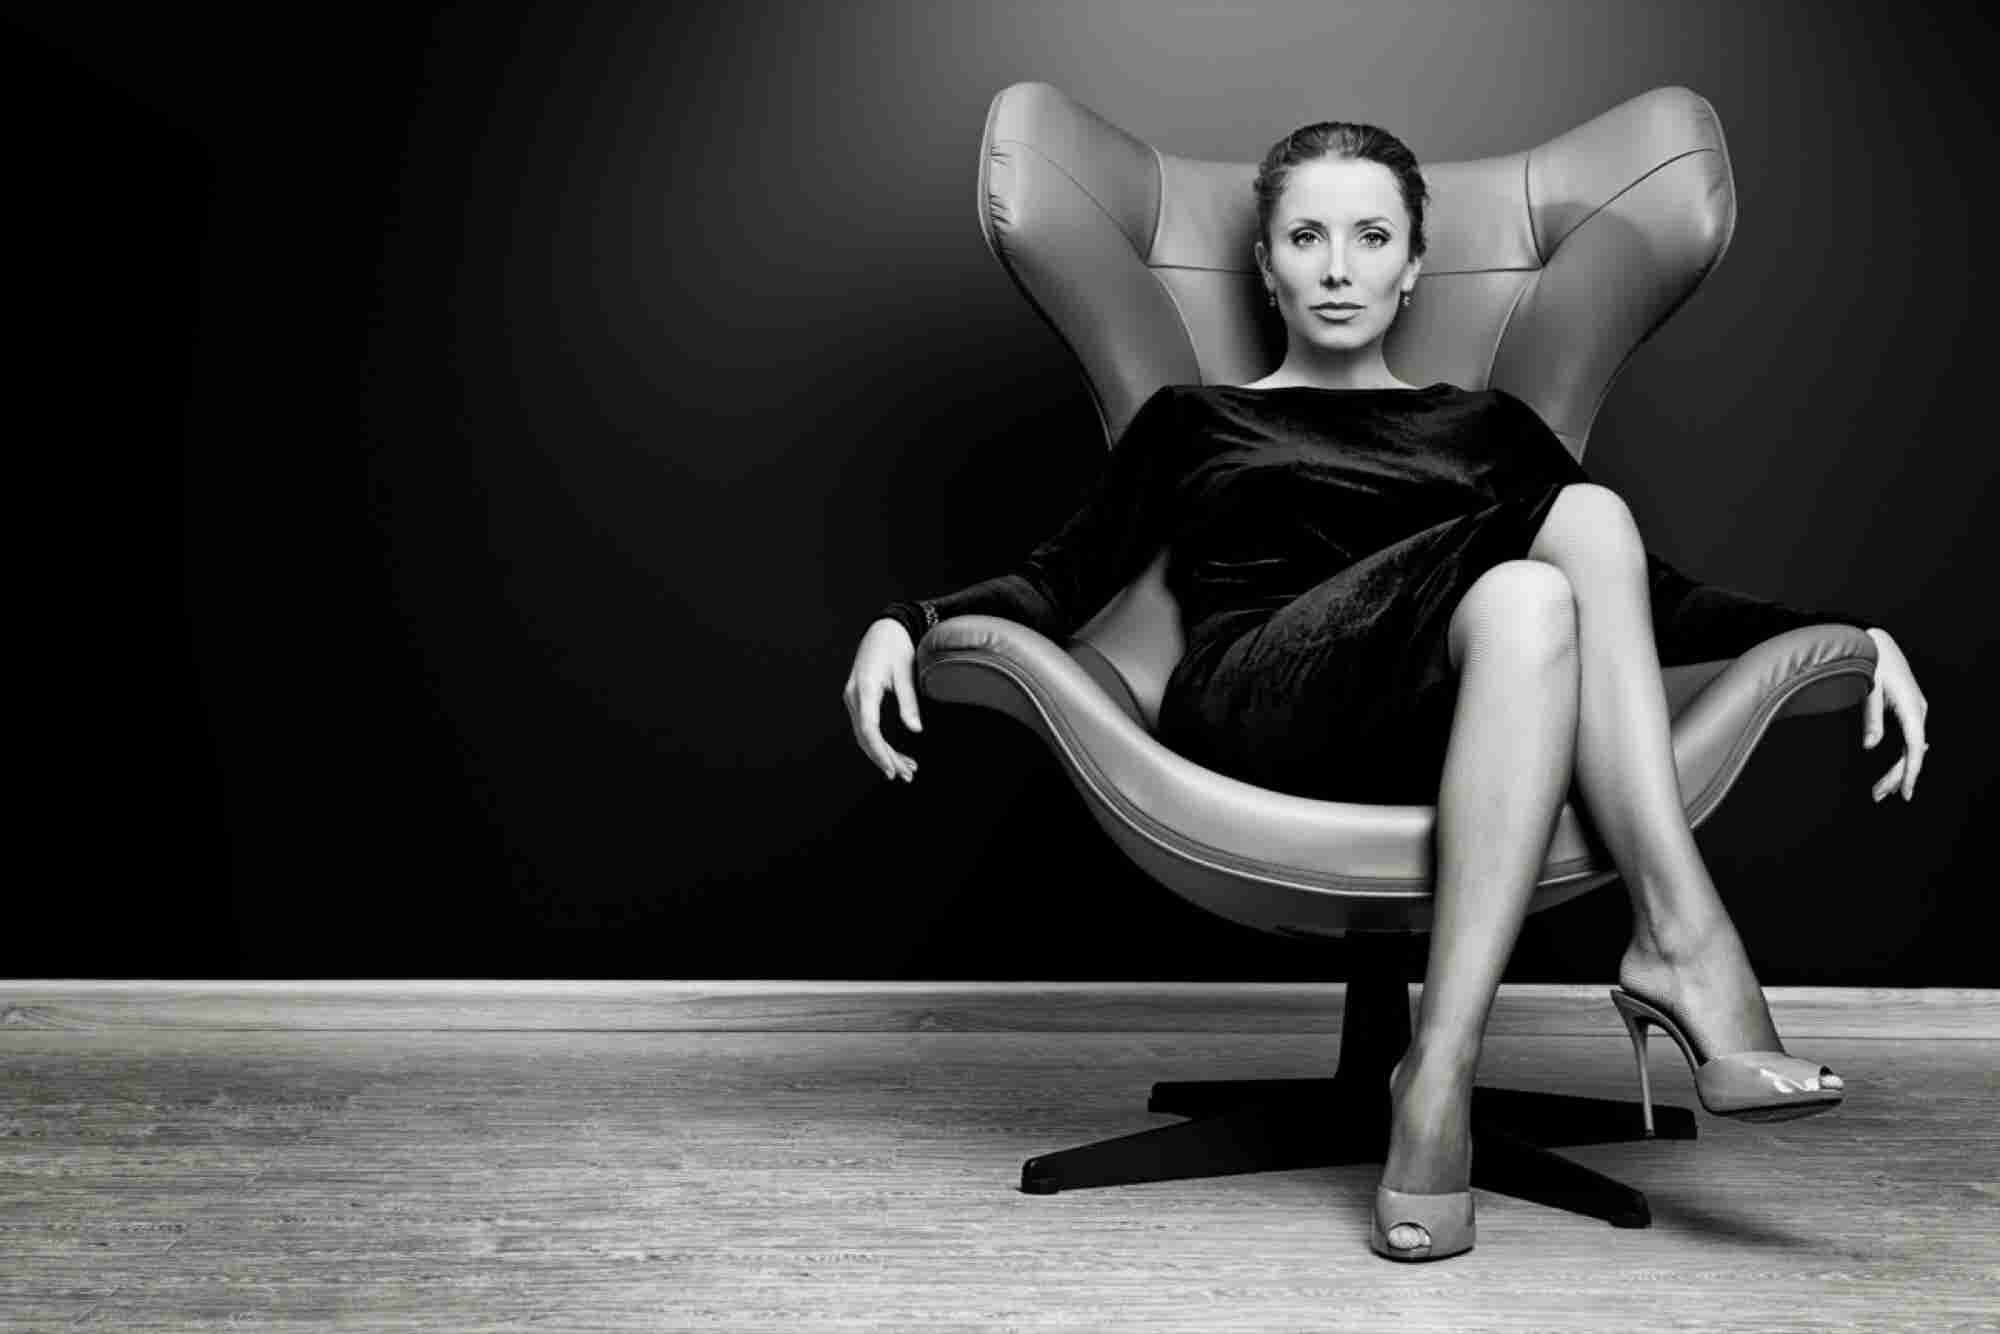 Tips for Mastering Body Language and Confidence